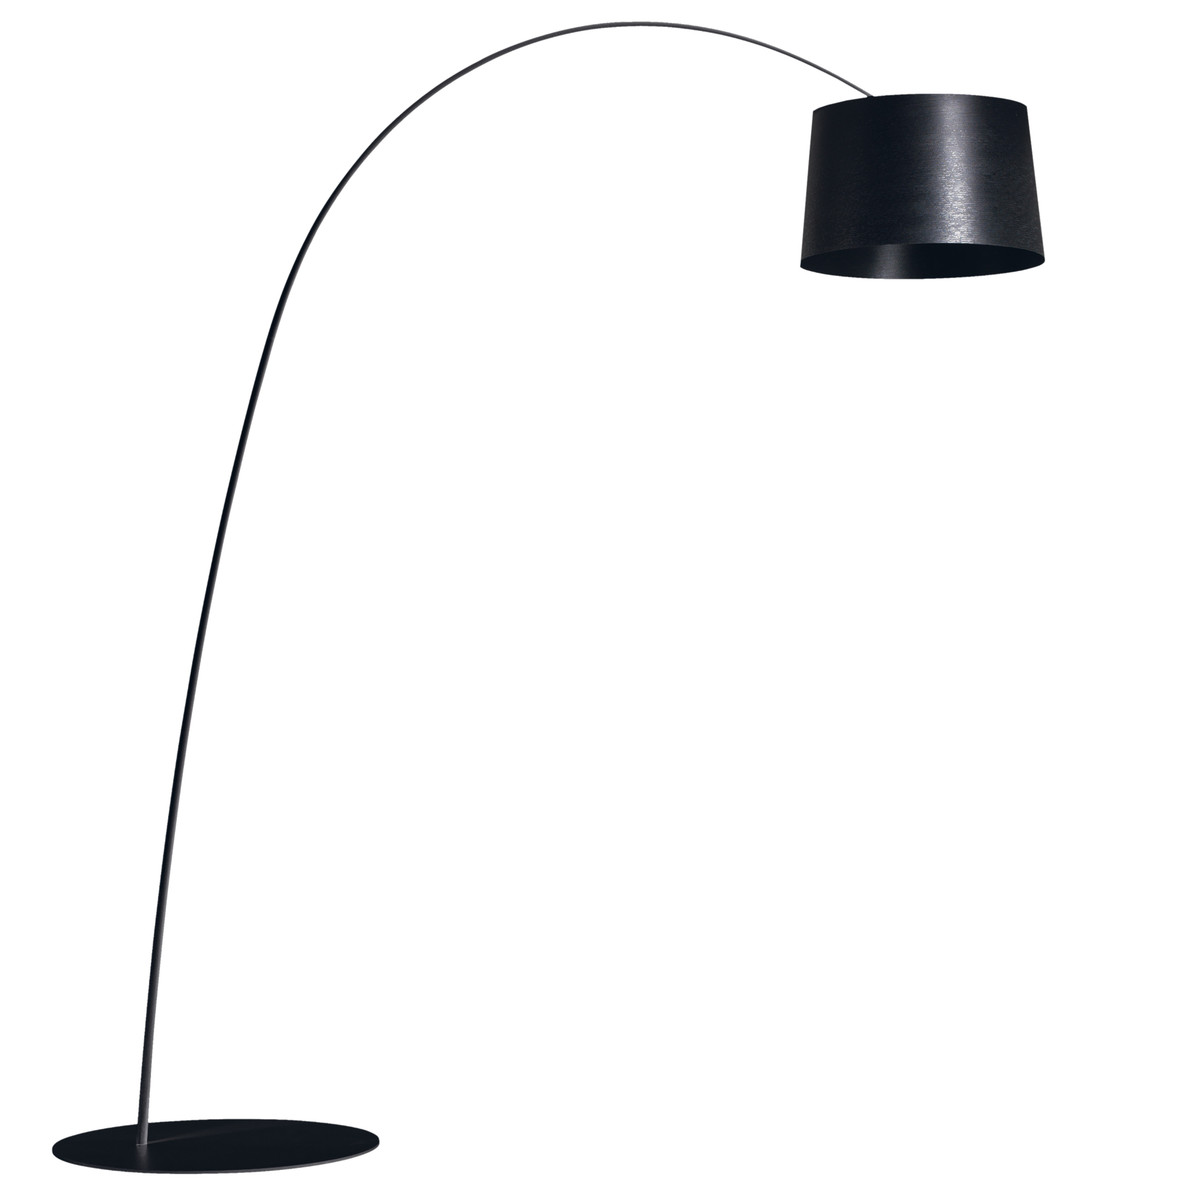 Foscarini Lights Foscarini Twiggy Floor Lamp Modern Design By Moderndesign Org